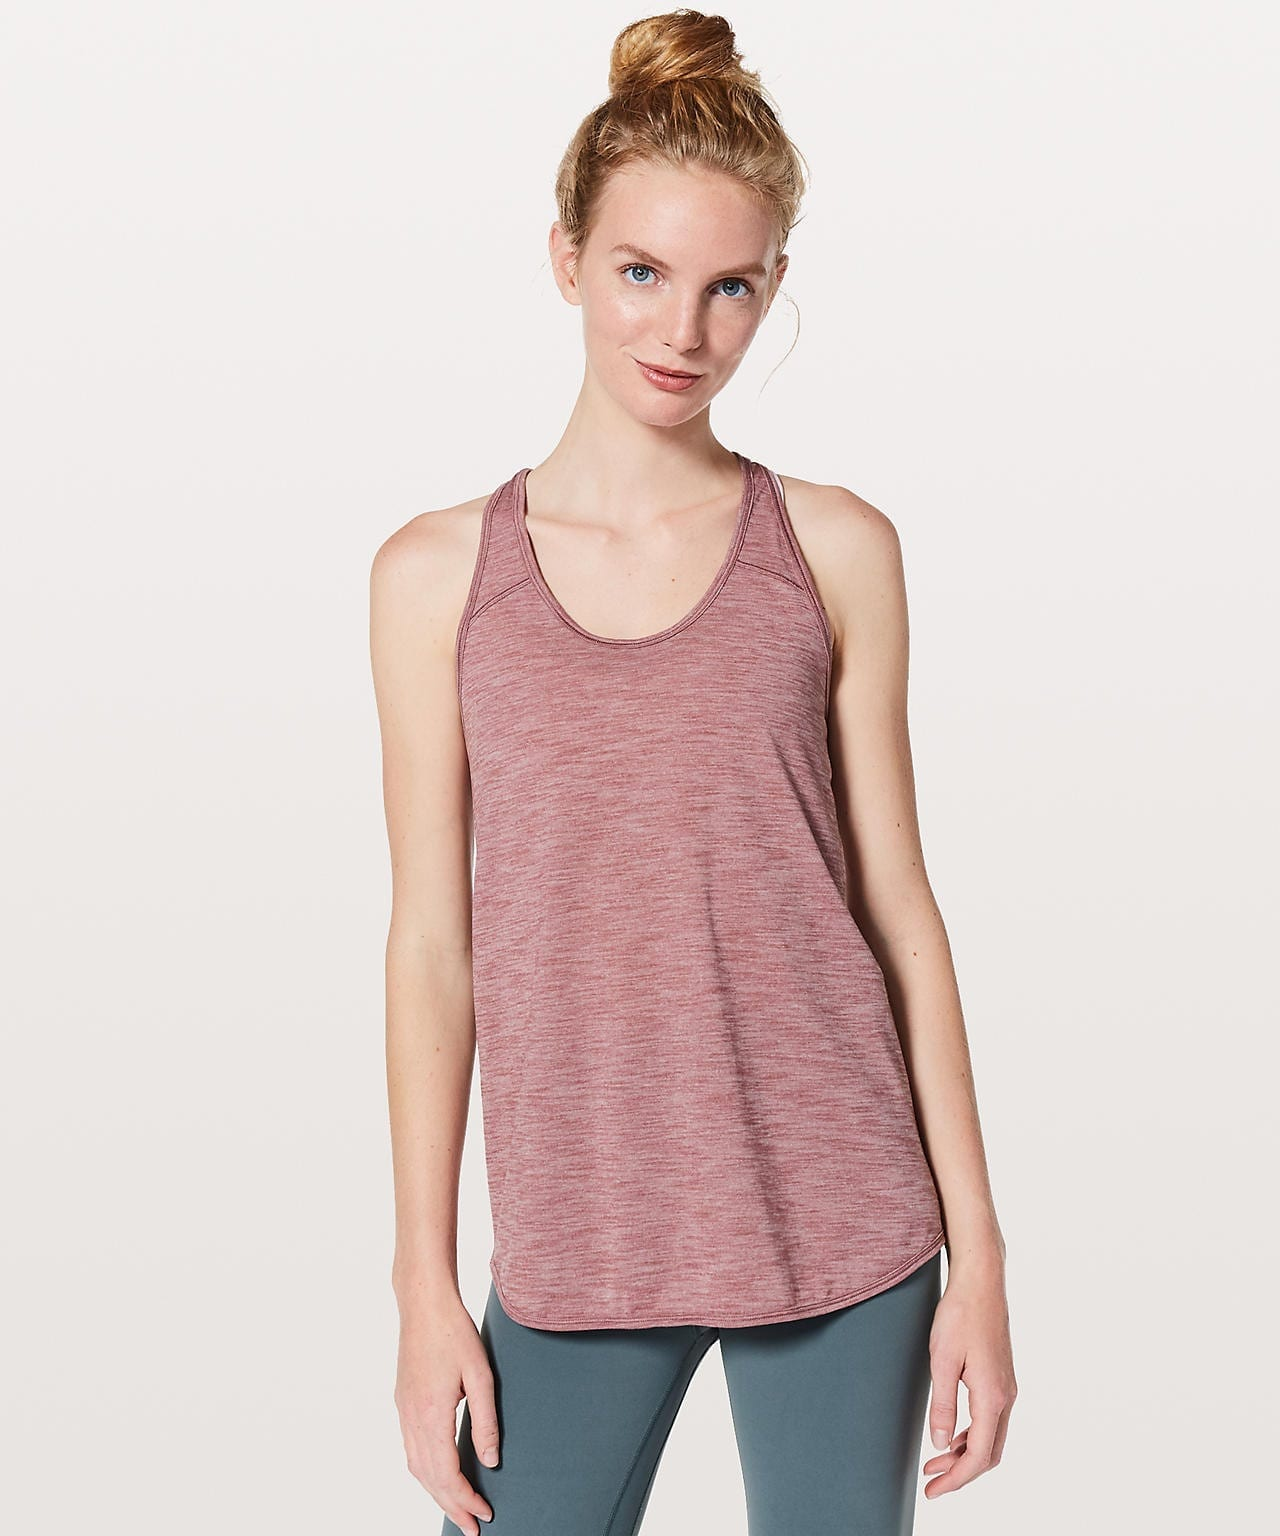 Essential Tank - Heathered Figue, Lululemon Upload